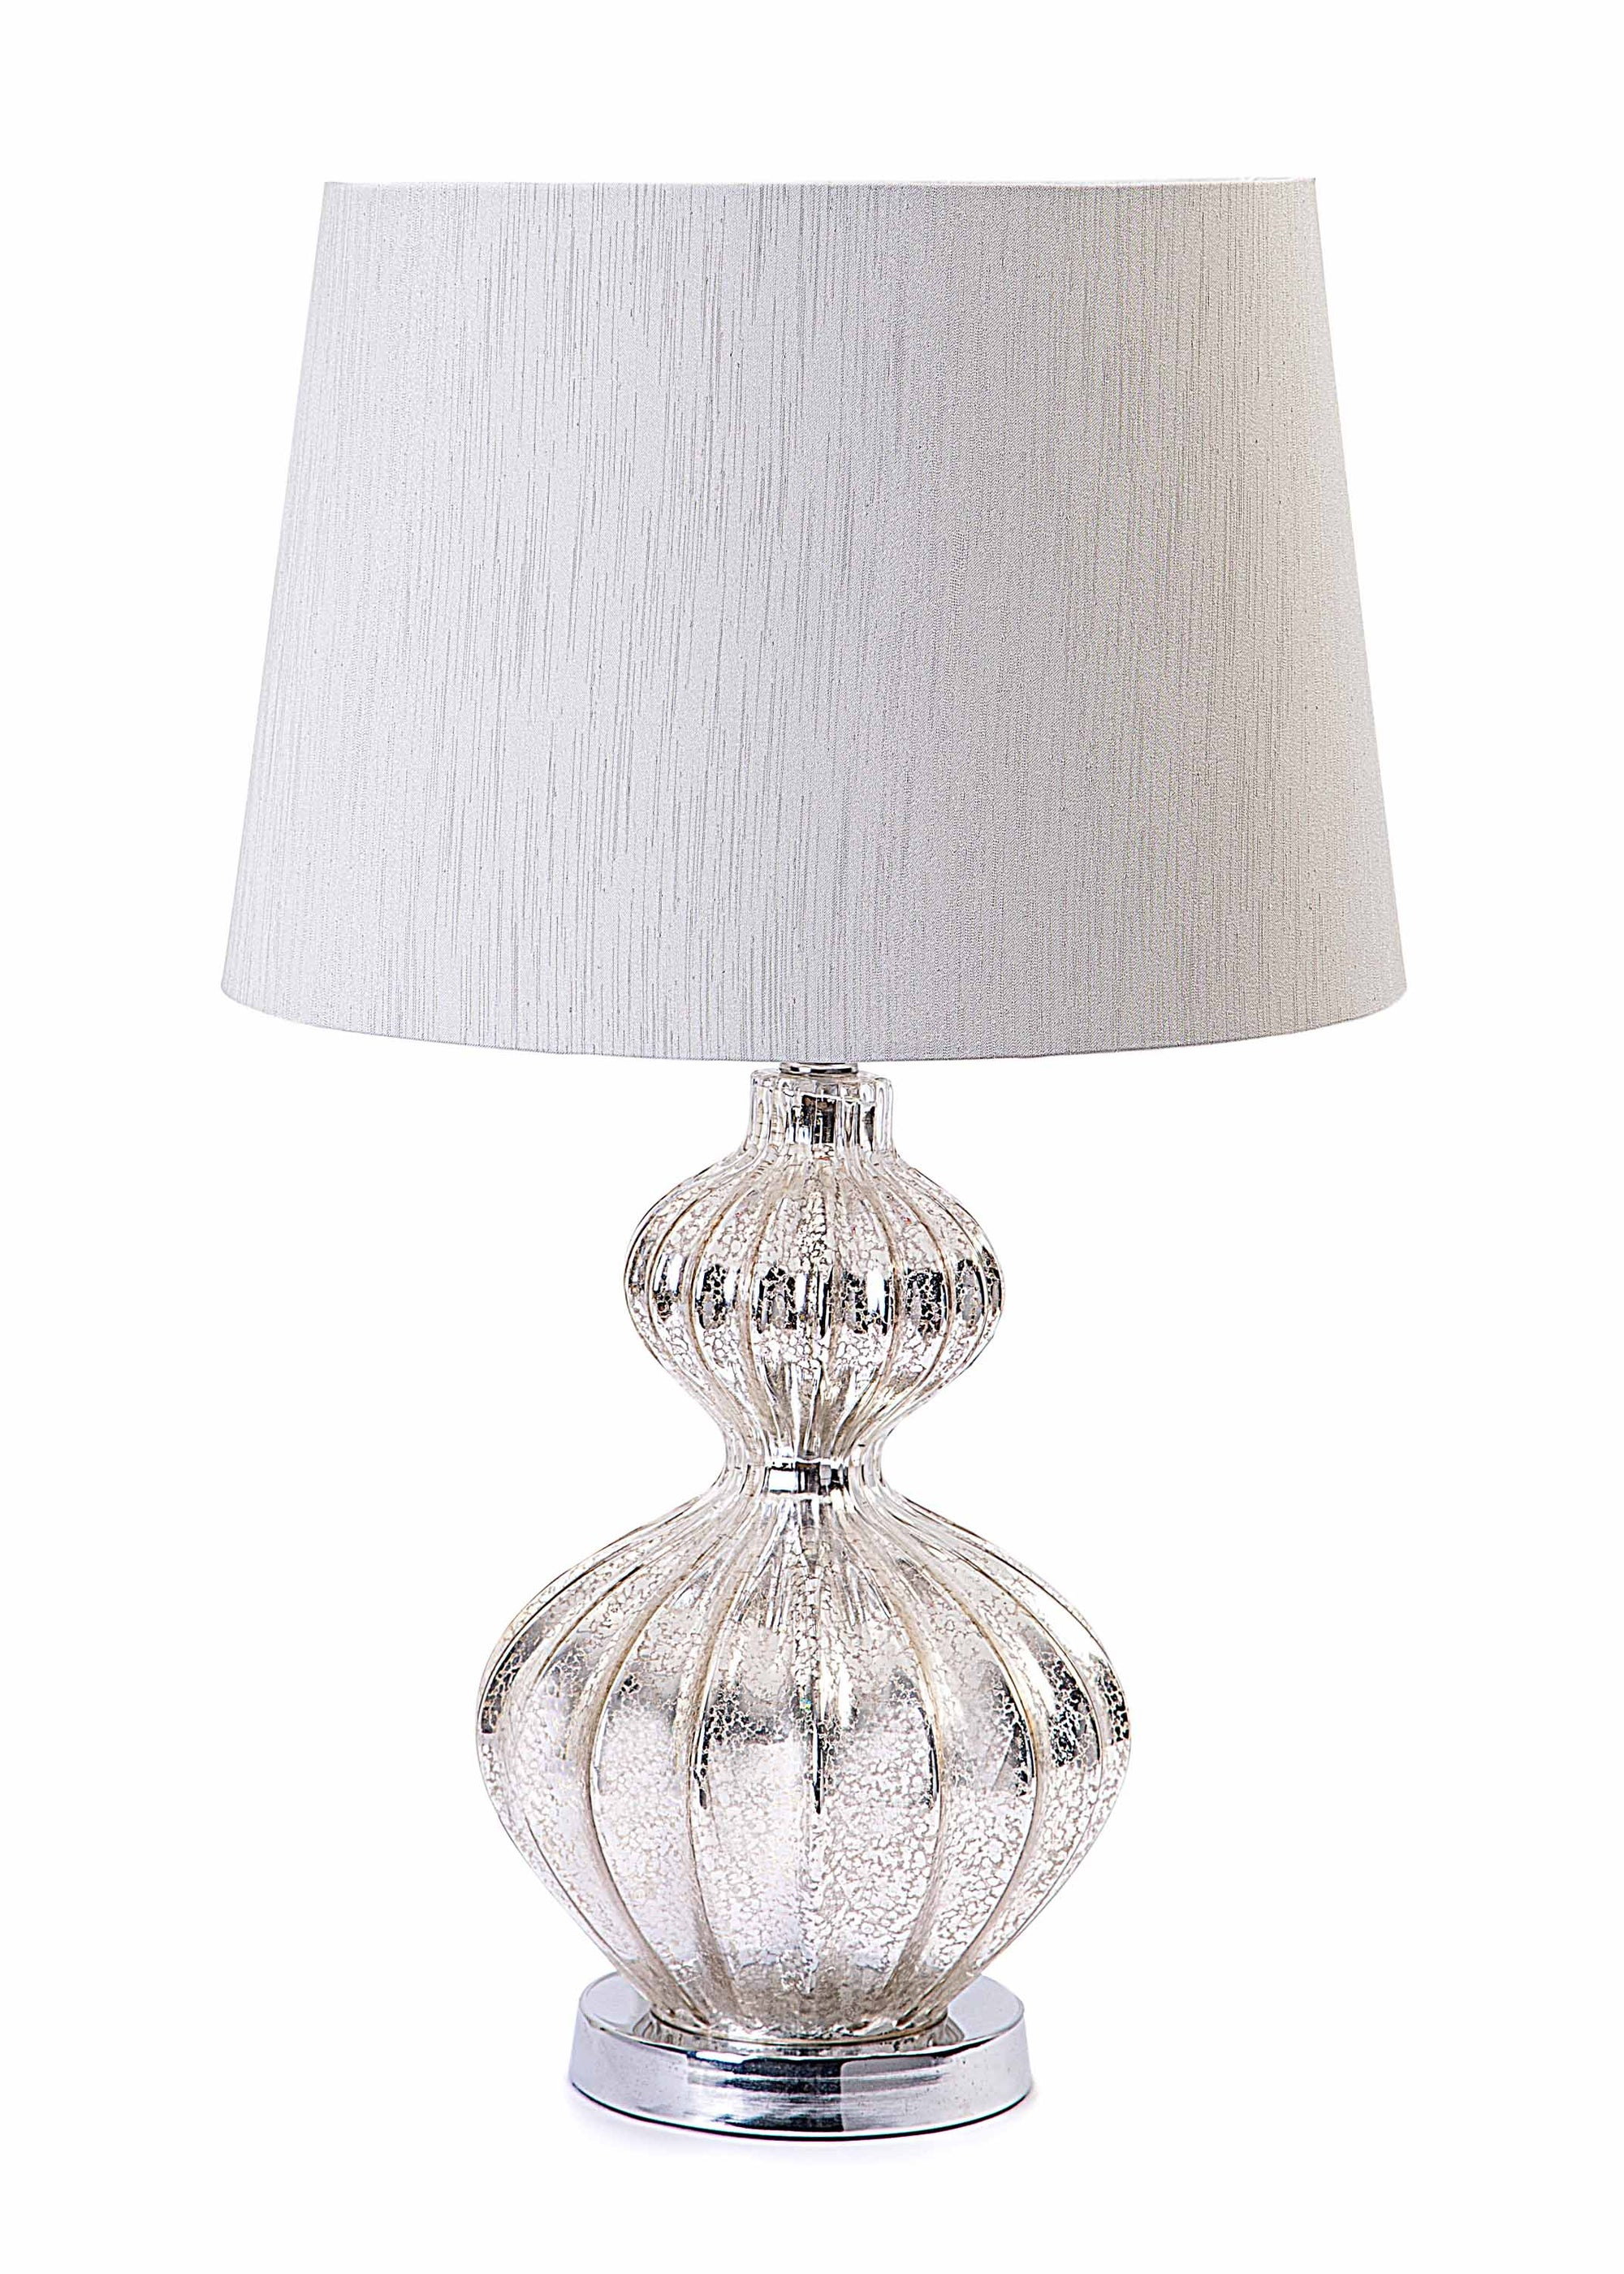 Mercury silver acrylic chrome base table lamp with light grey shade mercury silver acrylic chrome base table lamp with light grey shade table lamp chic mozeypictures